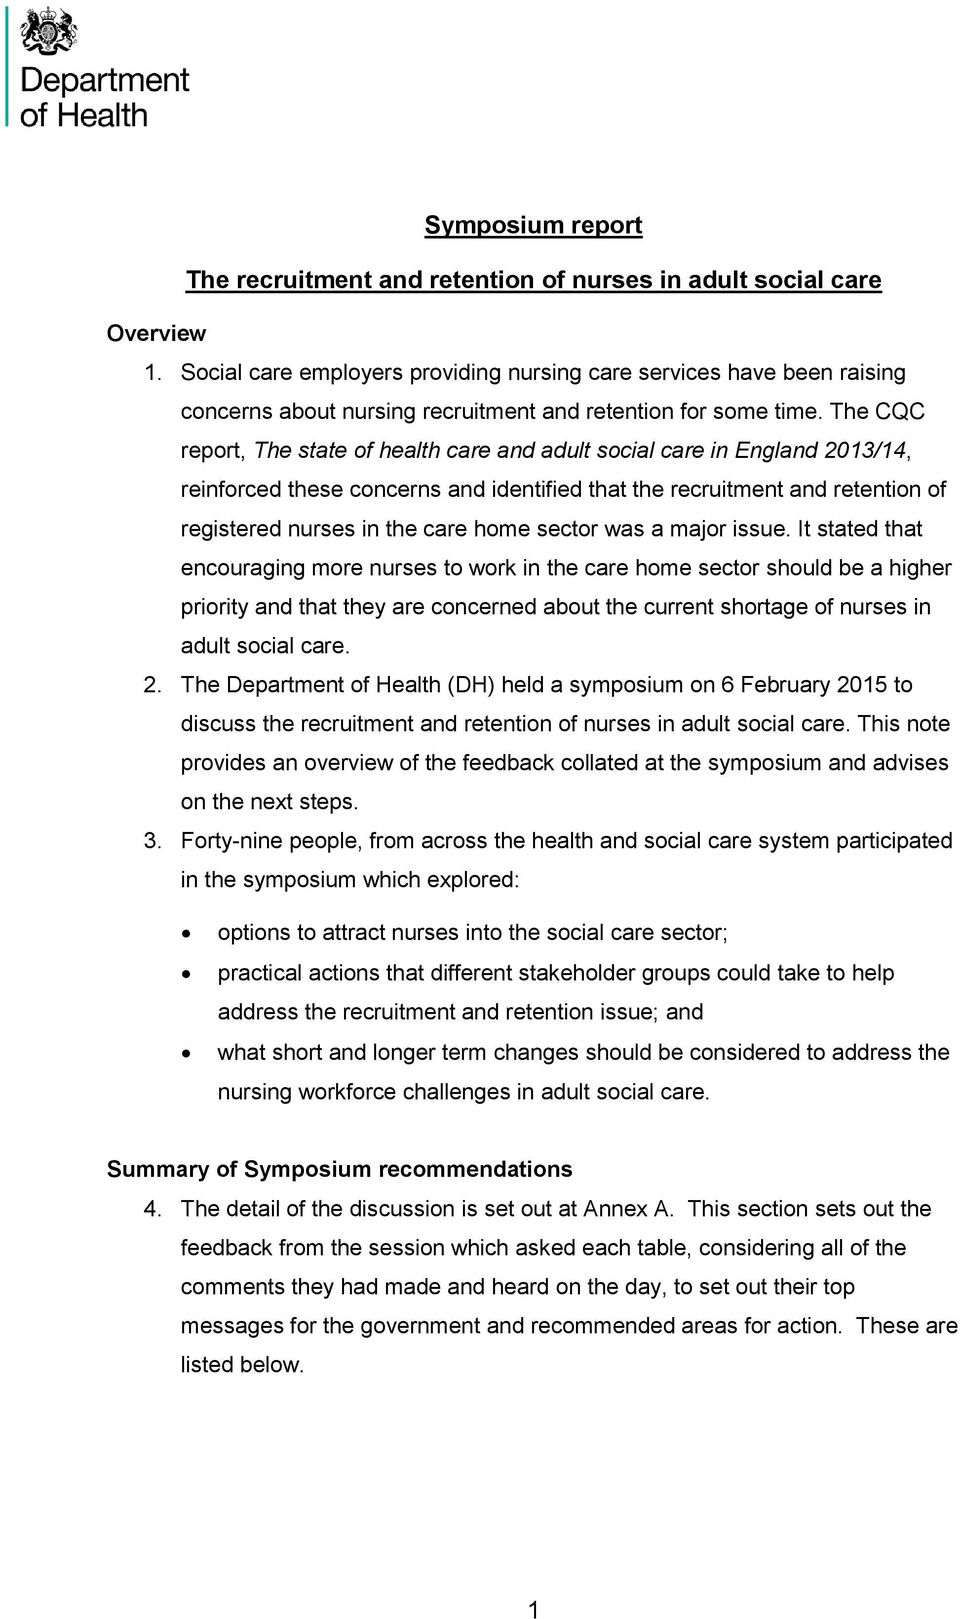 The CQC report, The state of health care and adult social care in England 2013/14, reinforced these concerns and identified that the recruitment and retention of registered nurses in the care home